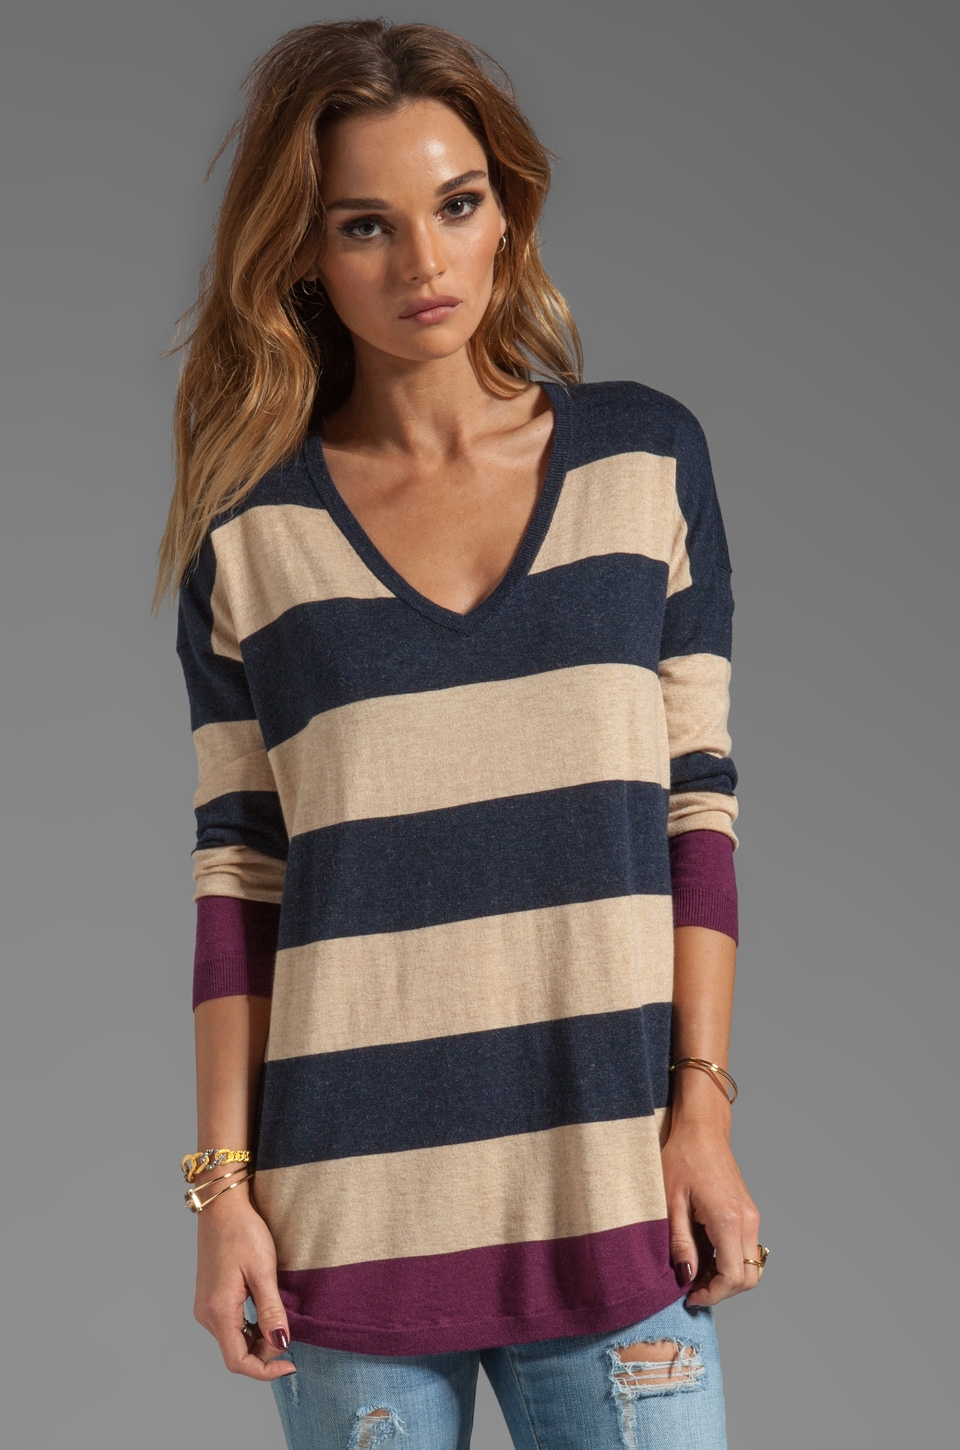 Joie Bold Stripe Chyanne B Sweater in Heather Midnight